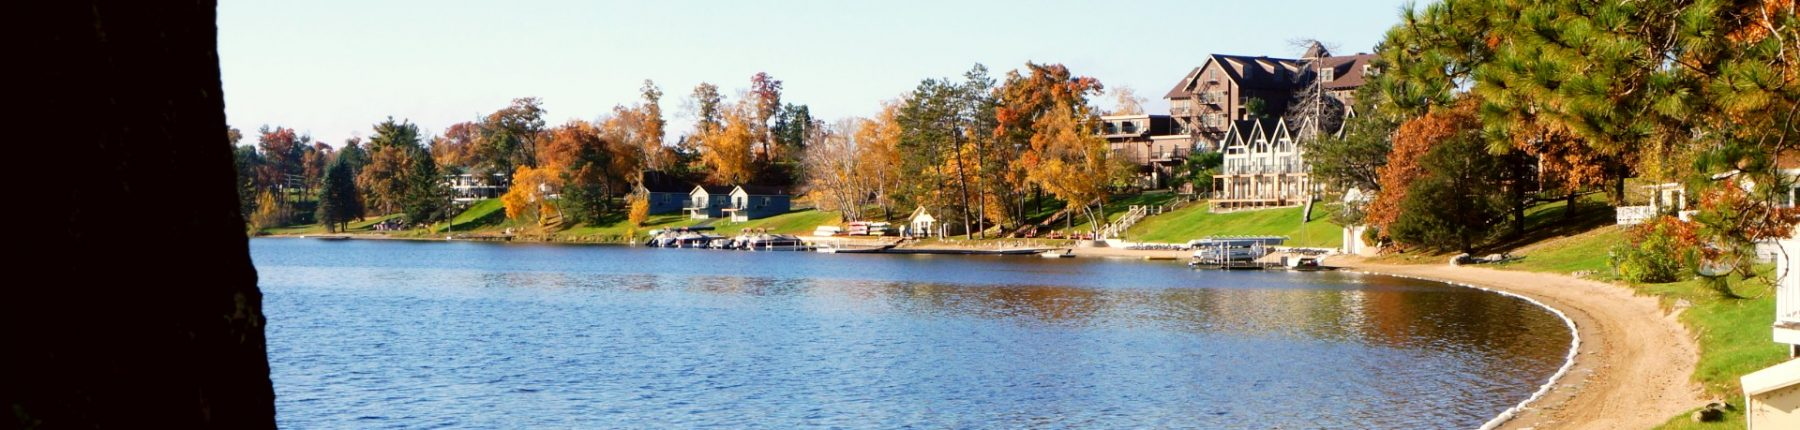 The Gull Lake and its surroundings during fall